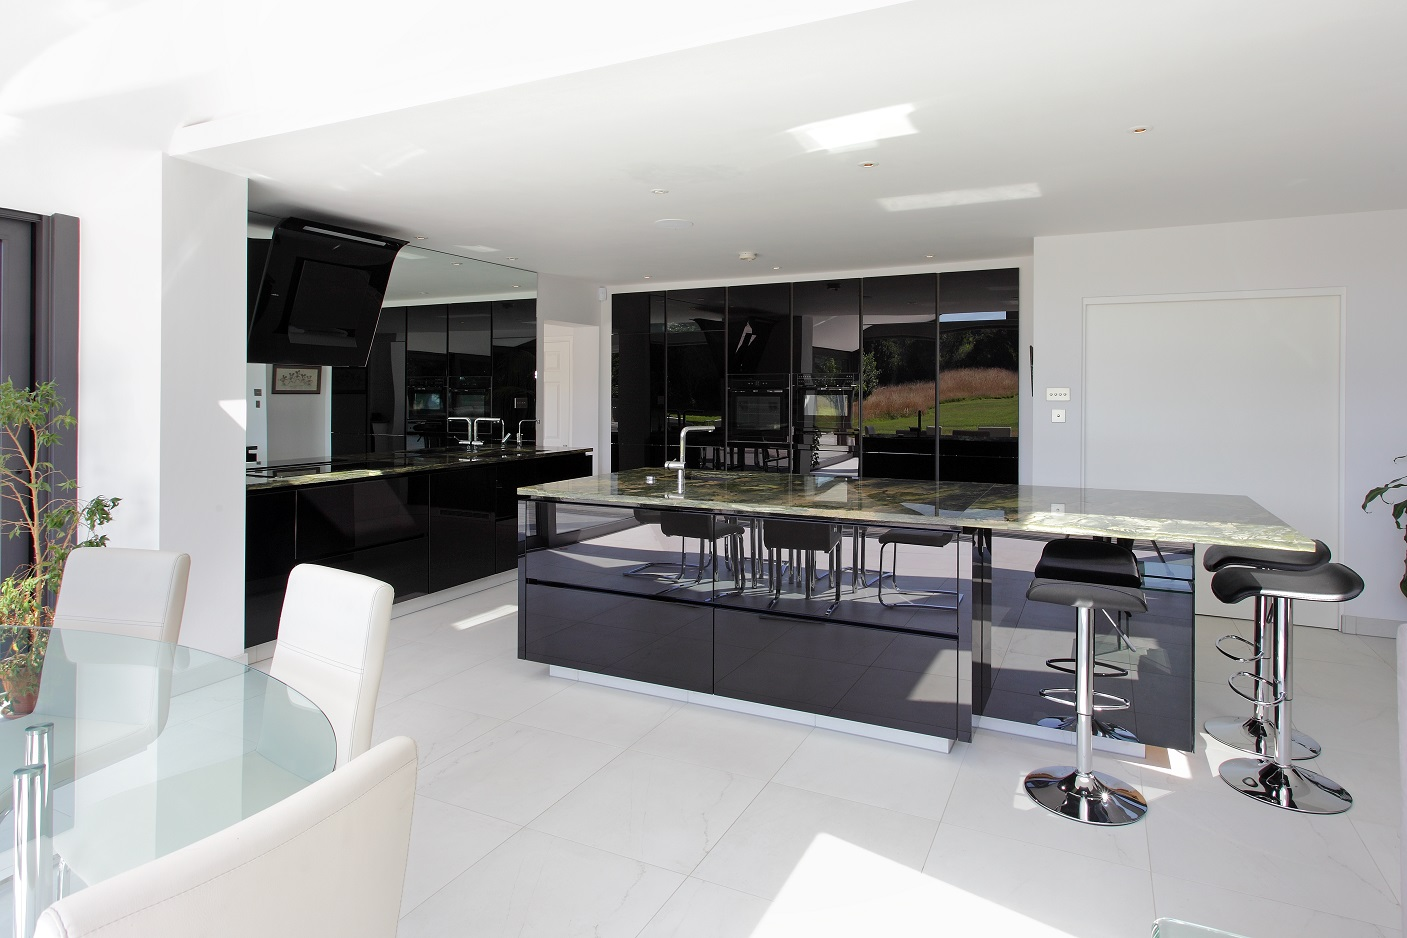 ALNO Star Vetrina in high gloss black glass with Brazilian bamboo granite worktop.